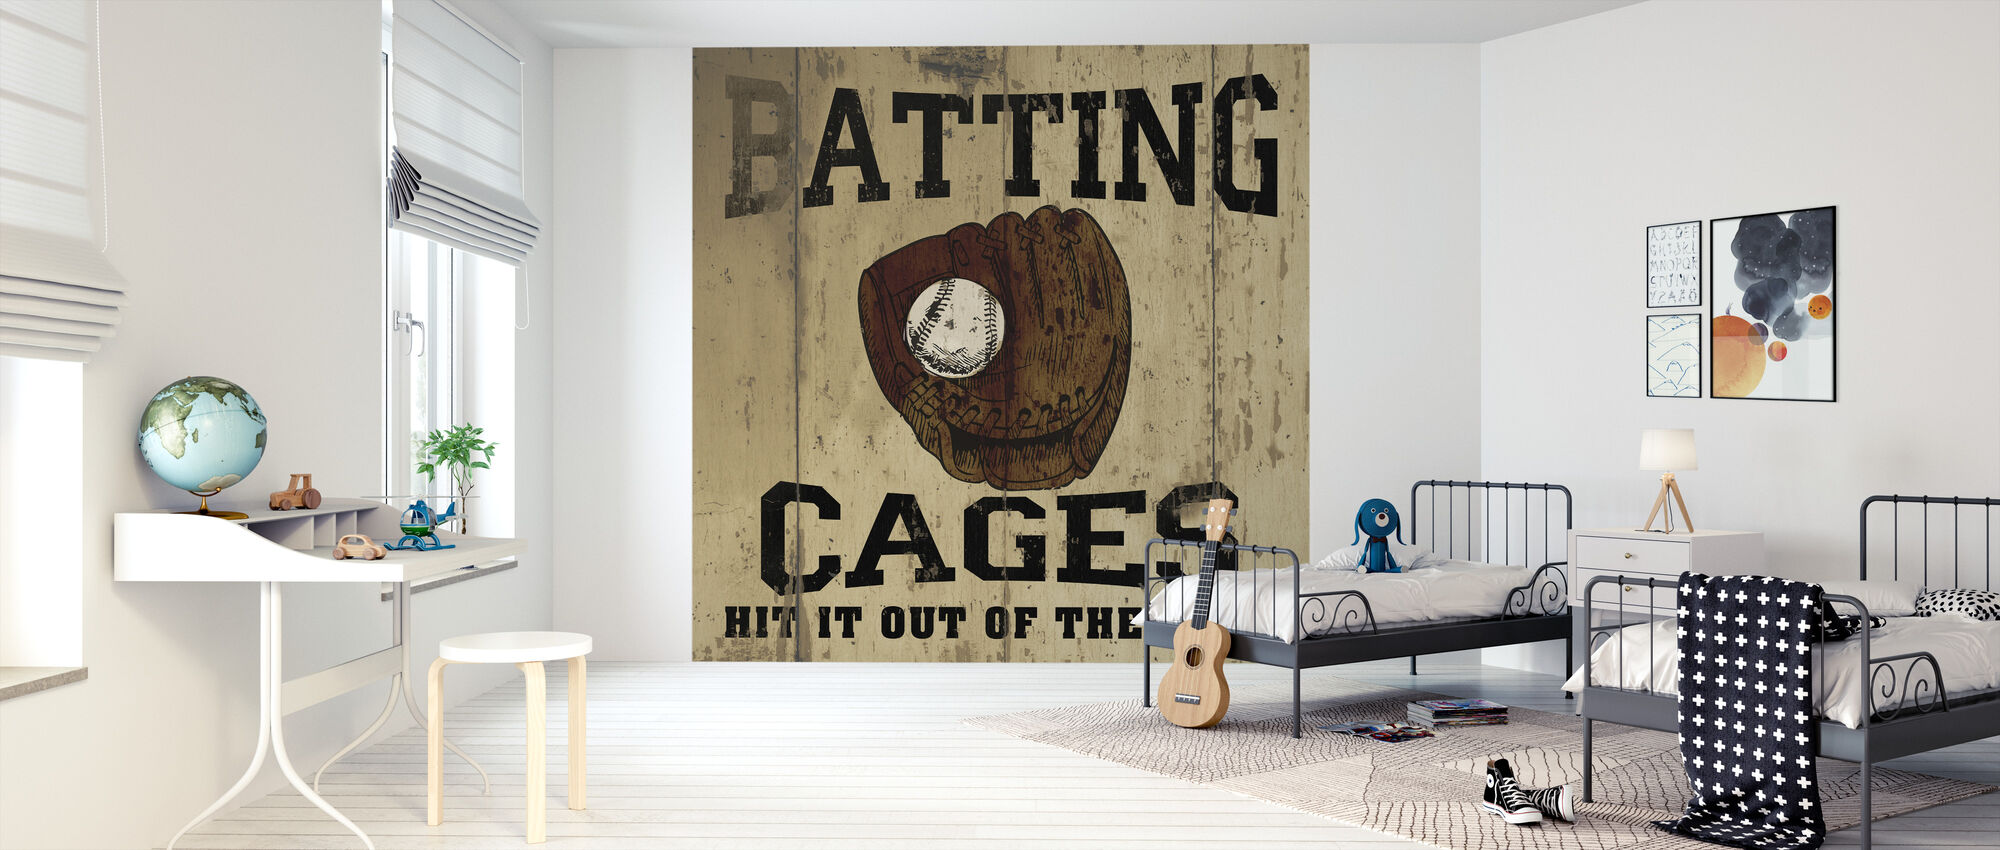 Batting Cages - Wallpaper - Kids Room